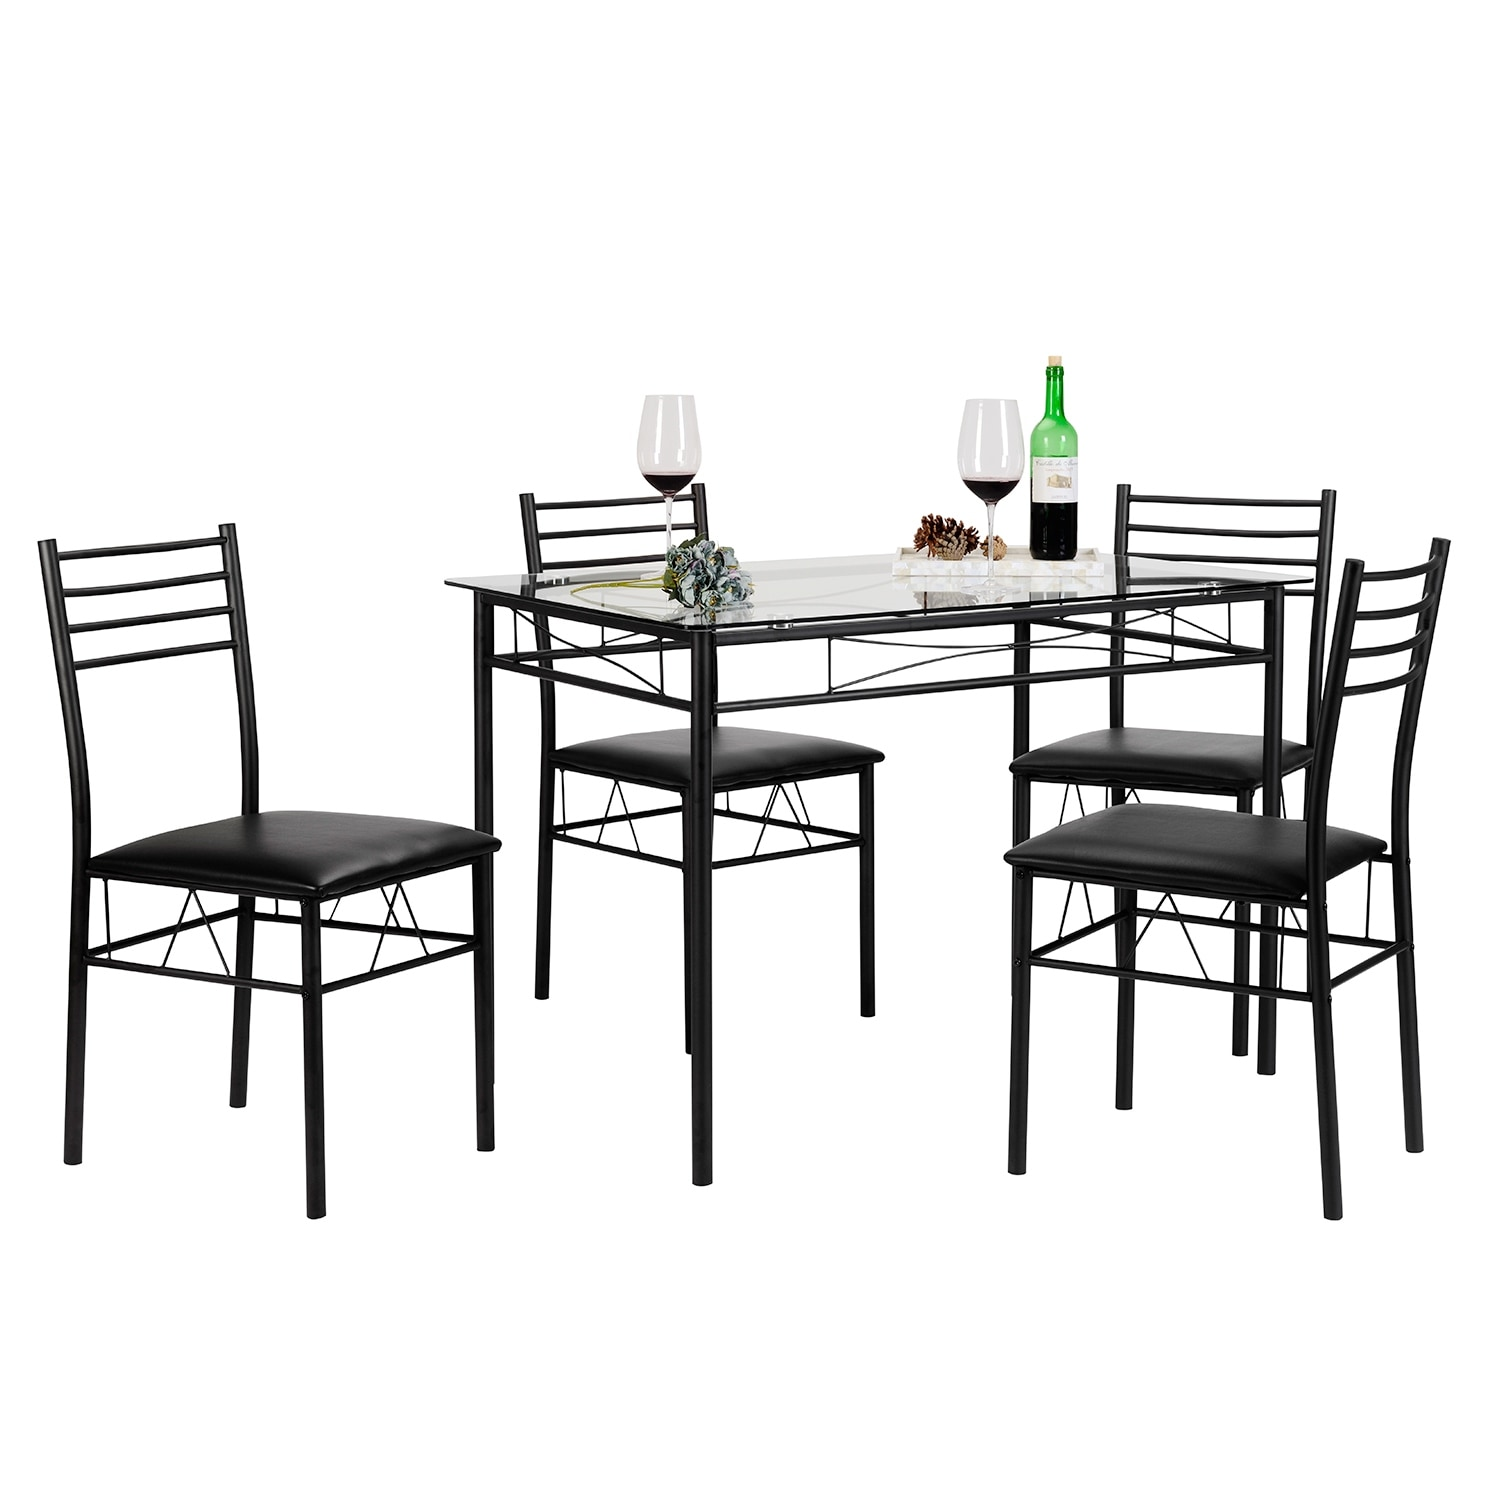 Kitchen Dining Table Set,Glass Table and 4 Chairs(Black/Silver ...